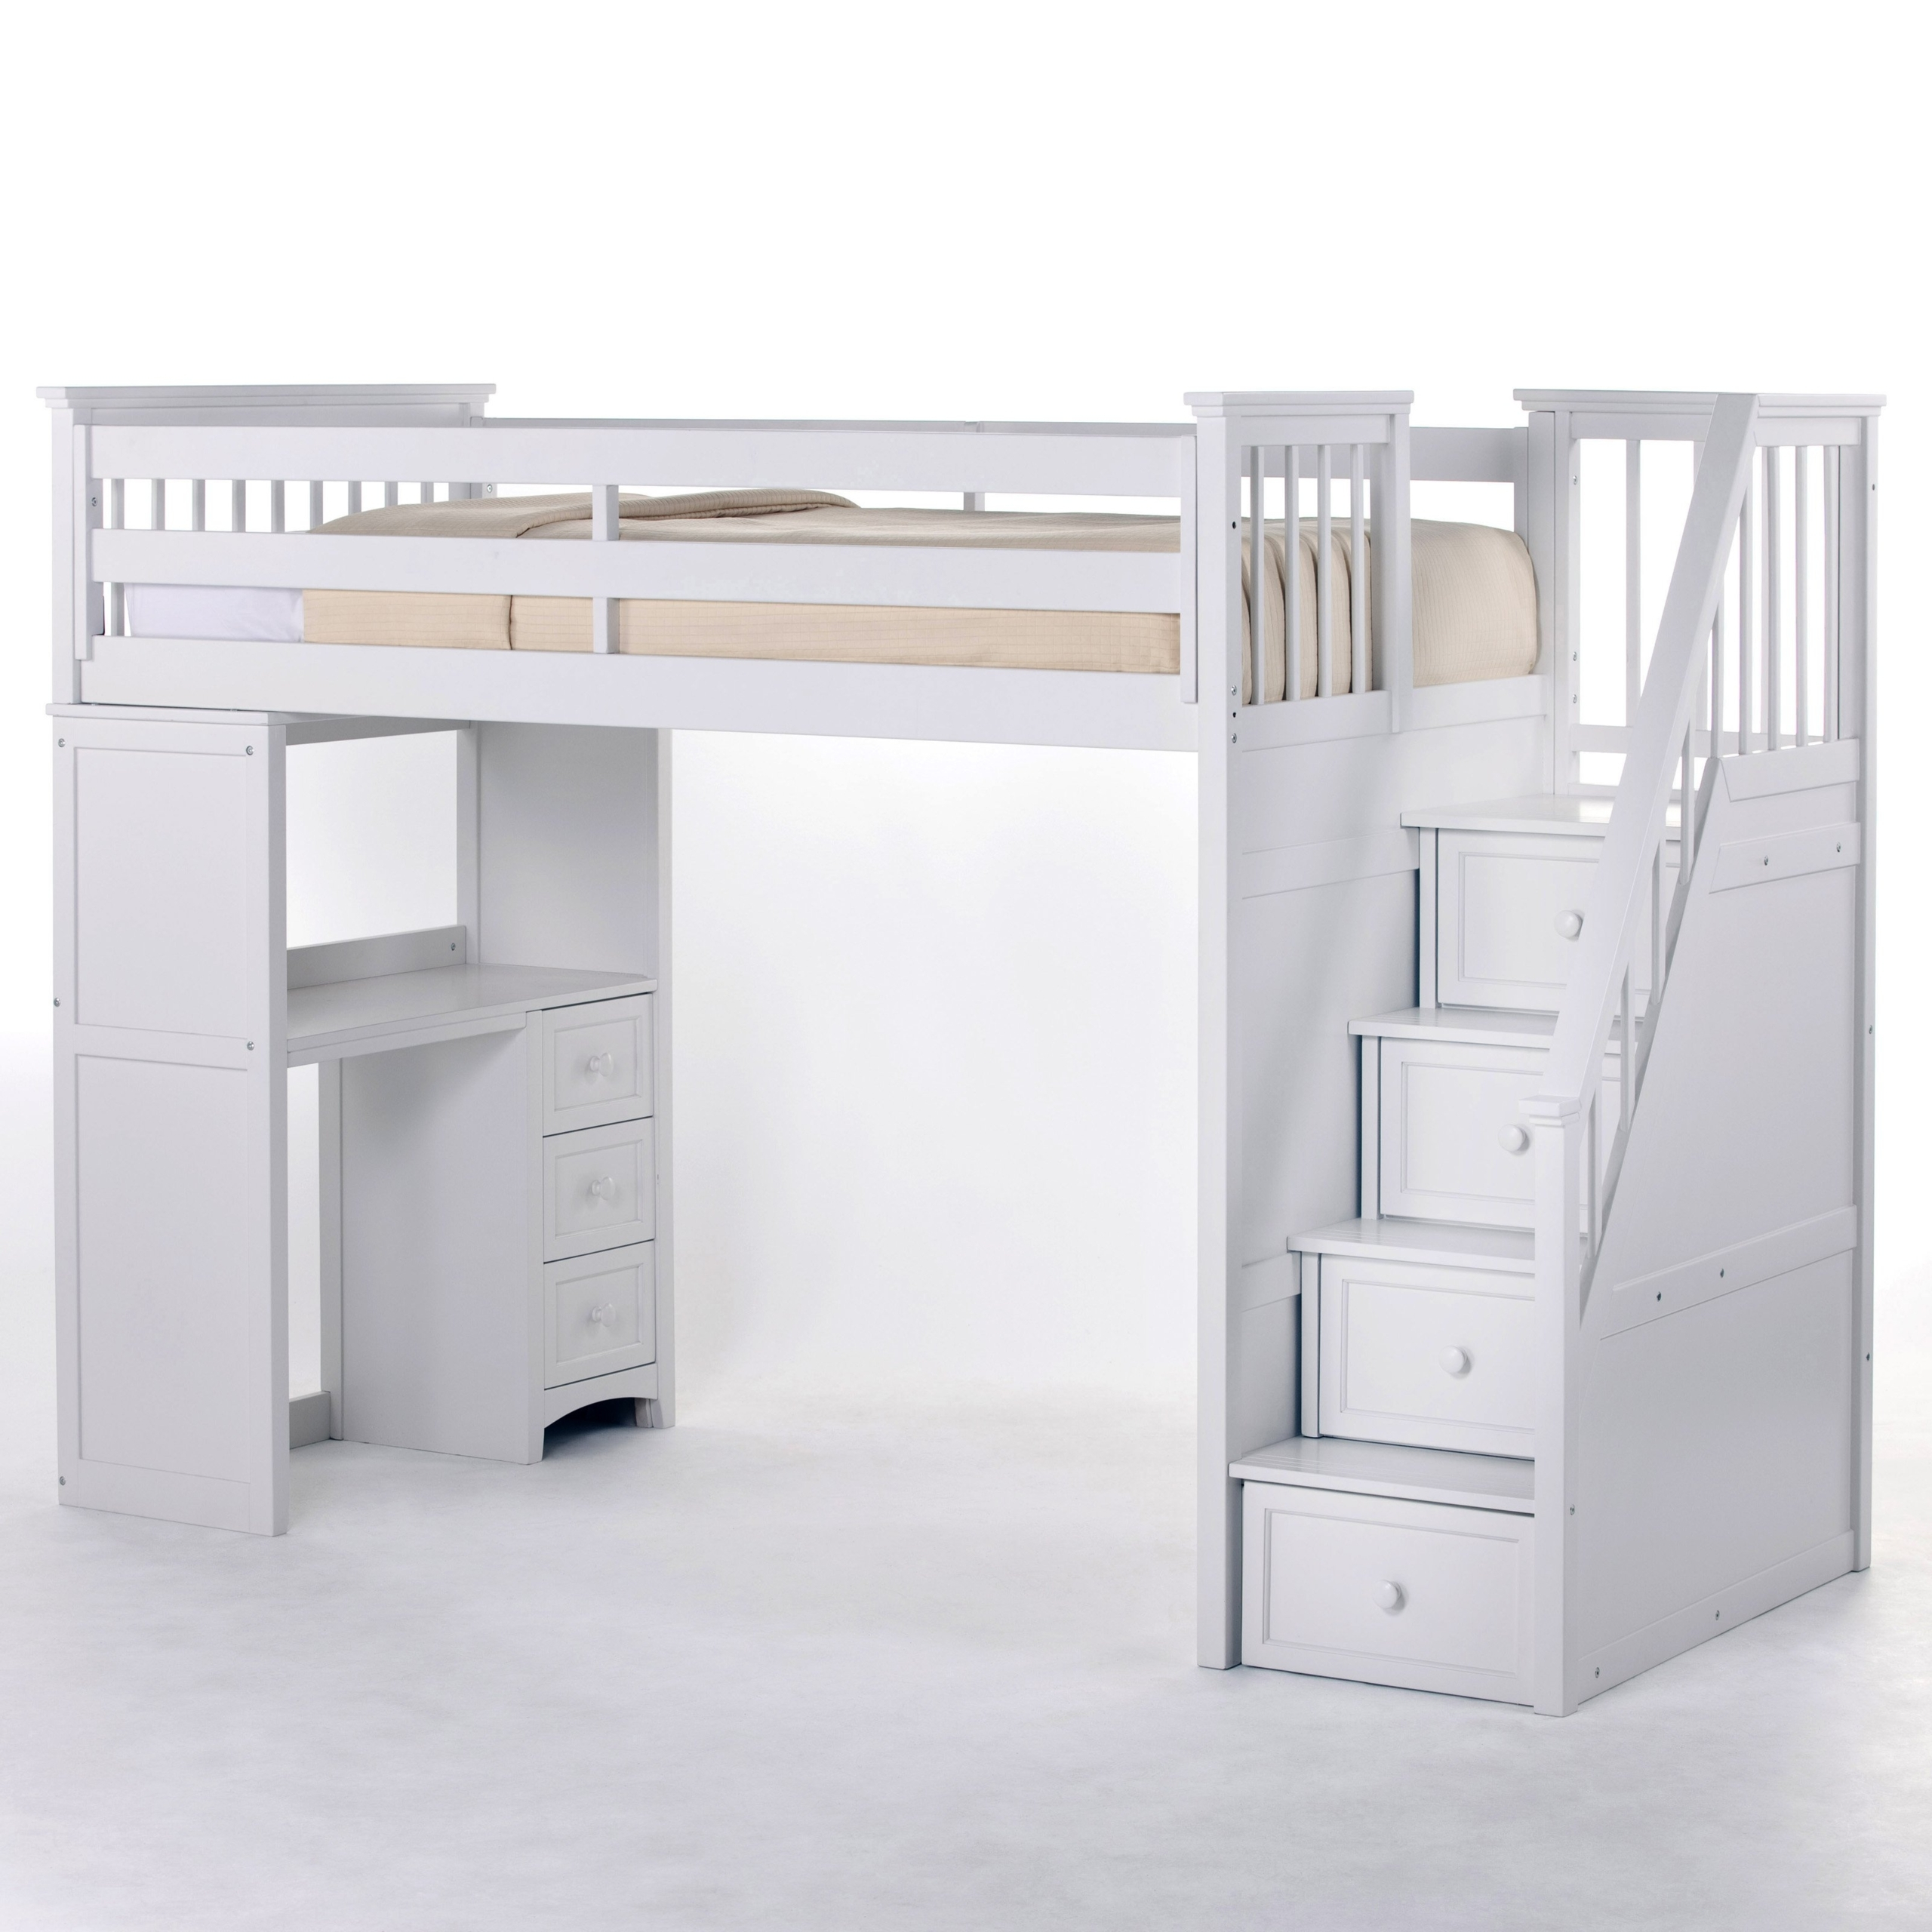 Picture of: Loft Bunk Beds With Desk And Drawers Ideas On Foter